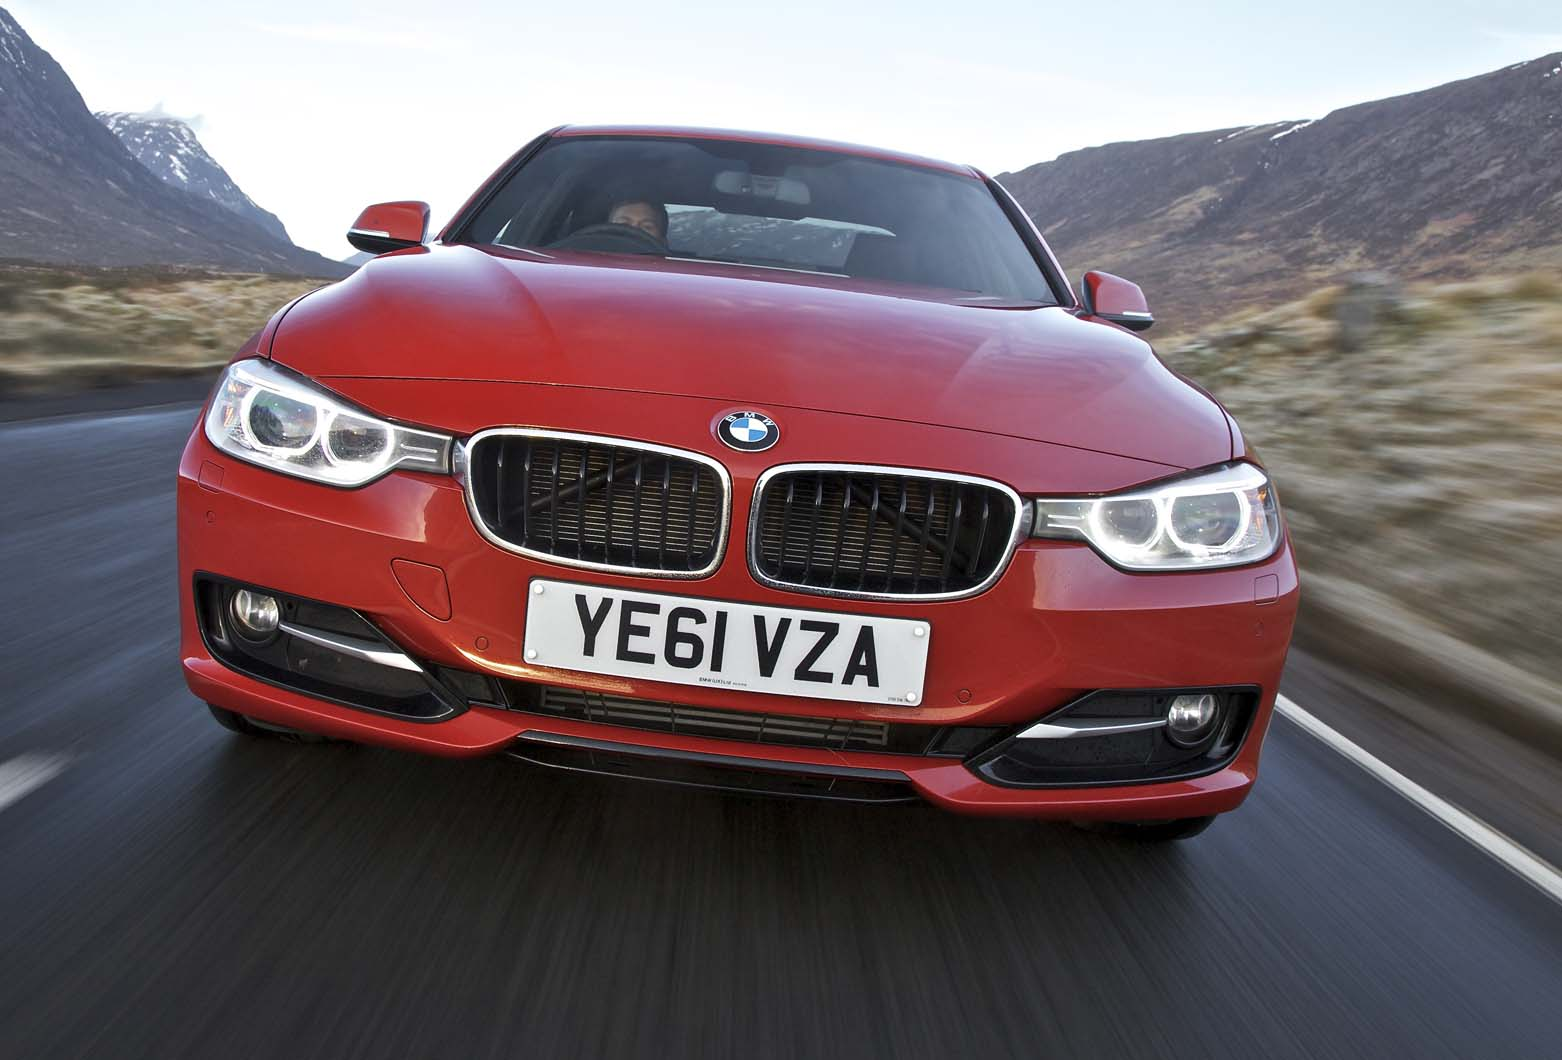 Used Buying Guide Which Bmw 3 Series Should You Buy Autocar 325i Timing Chain Is No Longer An Issue So Lets Look To The Future And Get Ourselves A Hybrid In Shape Of 330e 12000 Mile One From 2016 Around